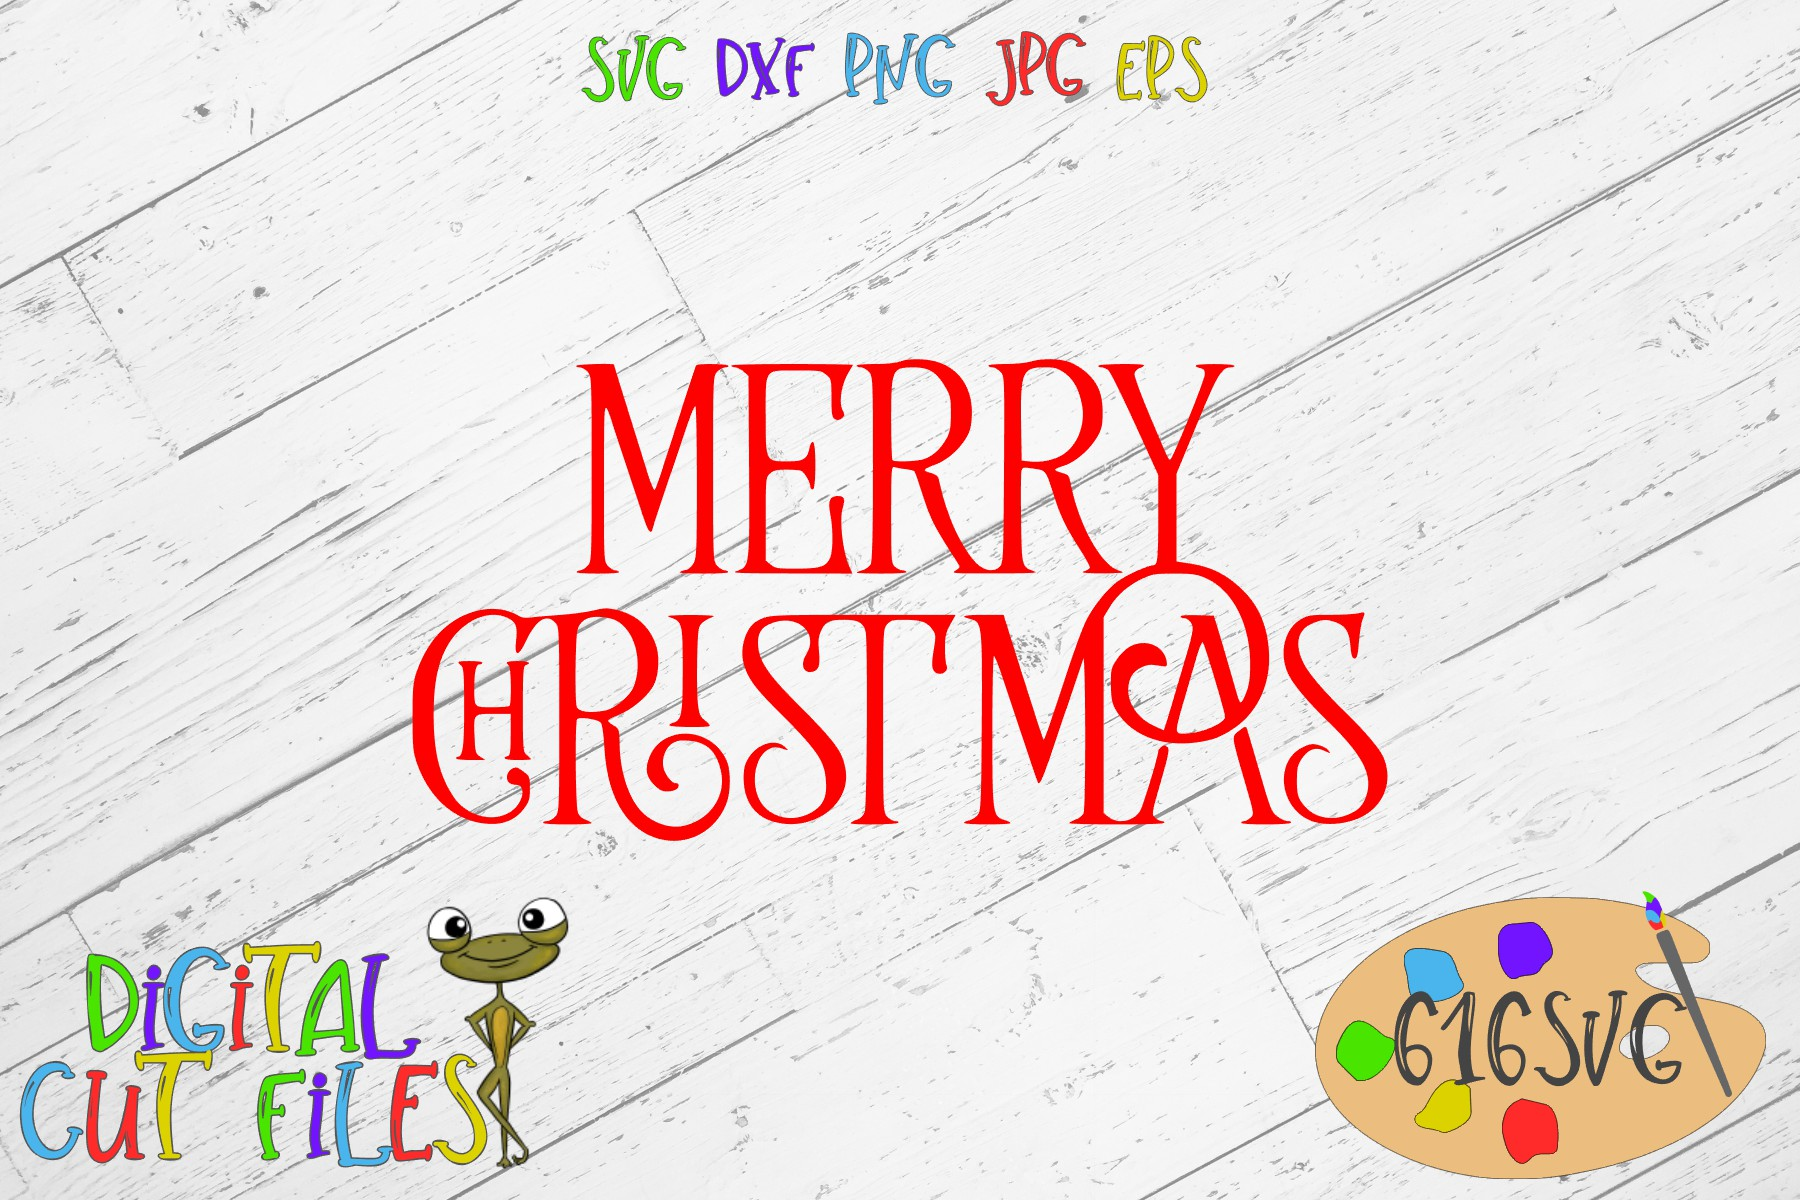 Download Free Merry Christmas Svg Dxf Graphic By 616svg Creative Fabrica for Cricut Explore, Silhouette and other cutting machines.